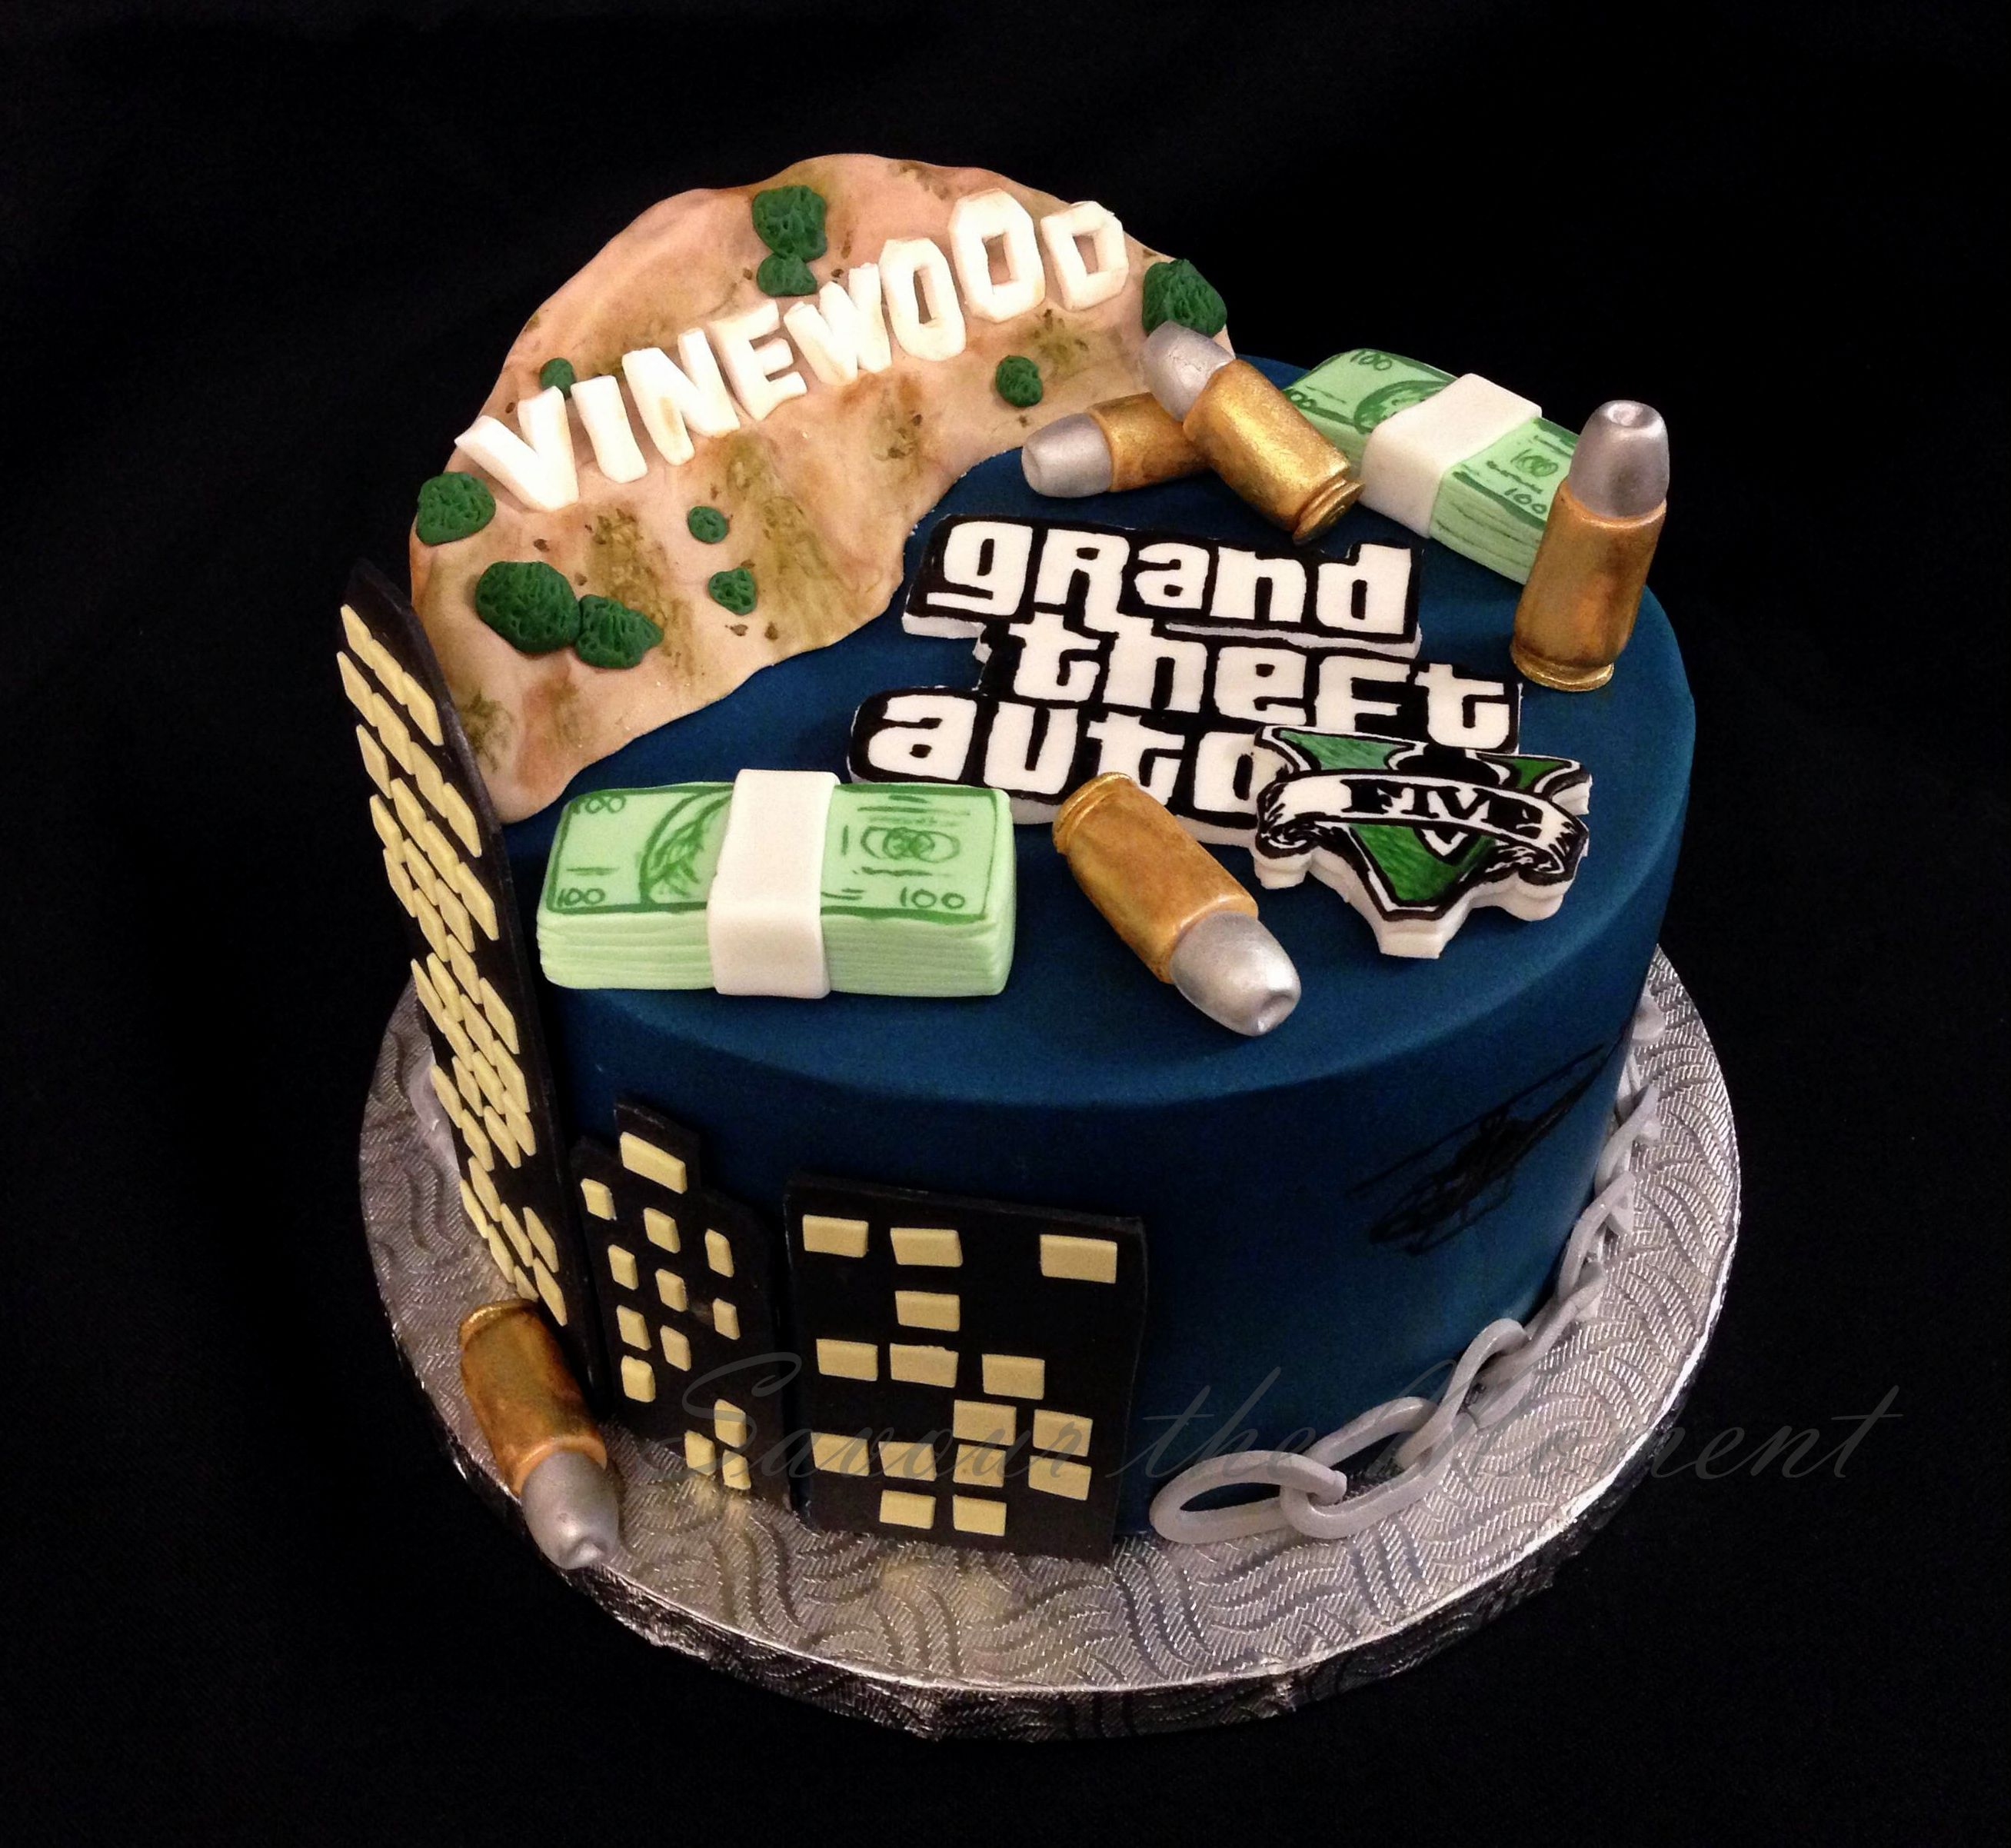 Gta Jpg 2615 2403 With Images Western Birthday Cakes Cake